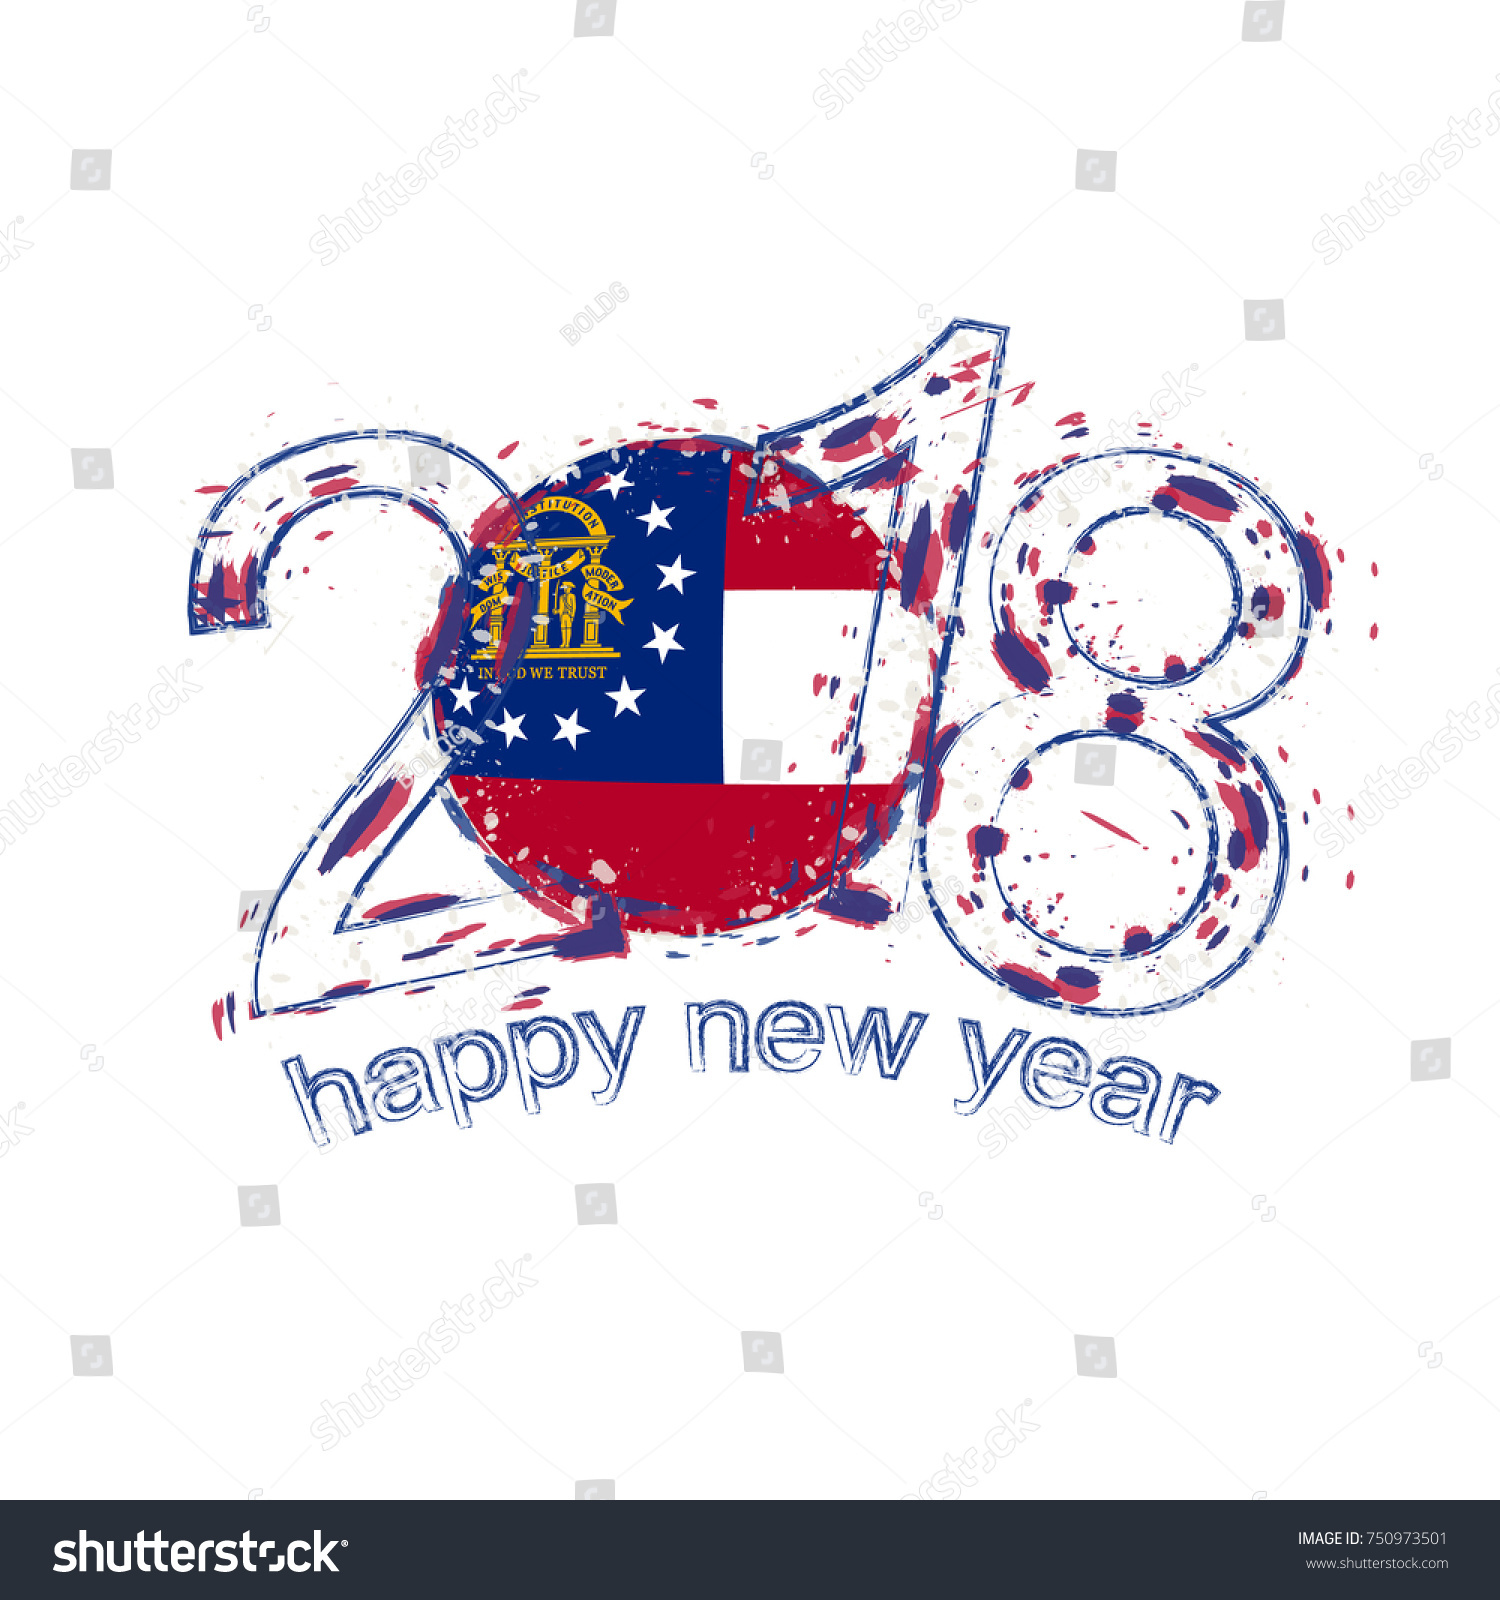 2018 happy new year georgia us state grunge vector template for greeting card calendars 2018